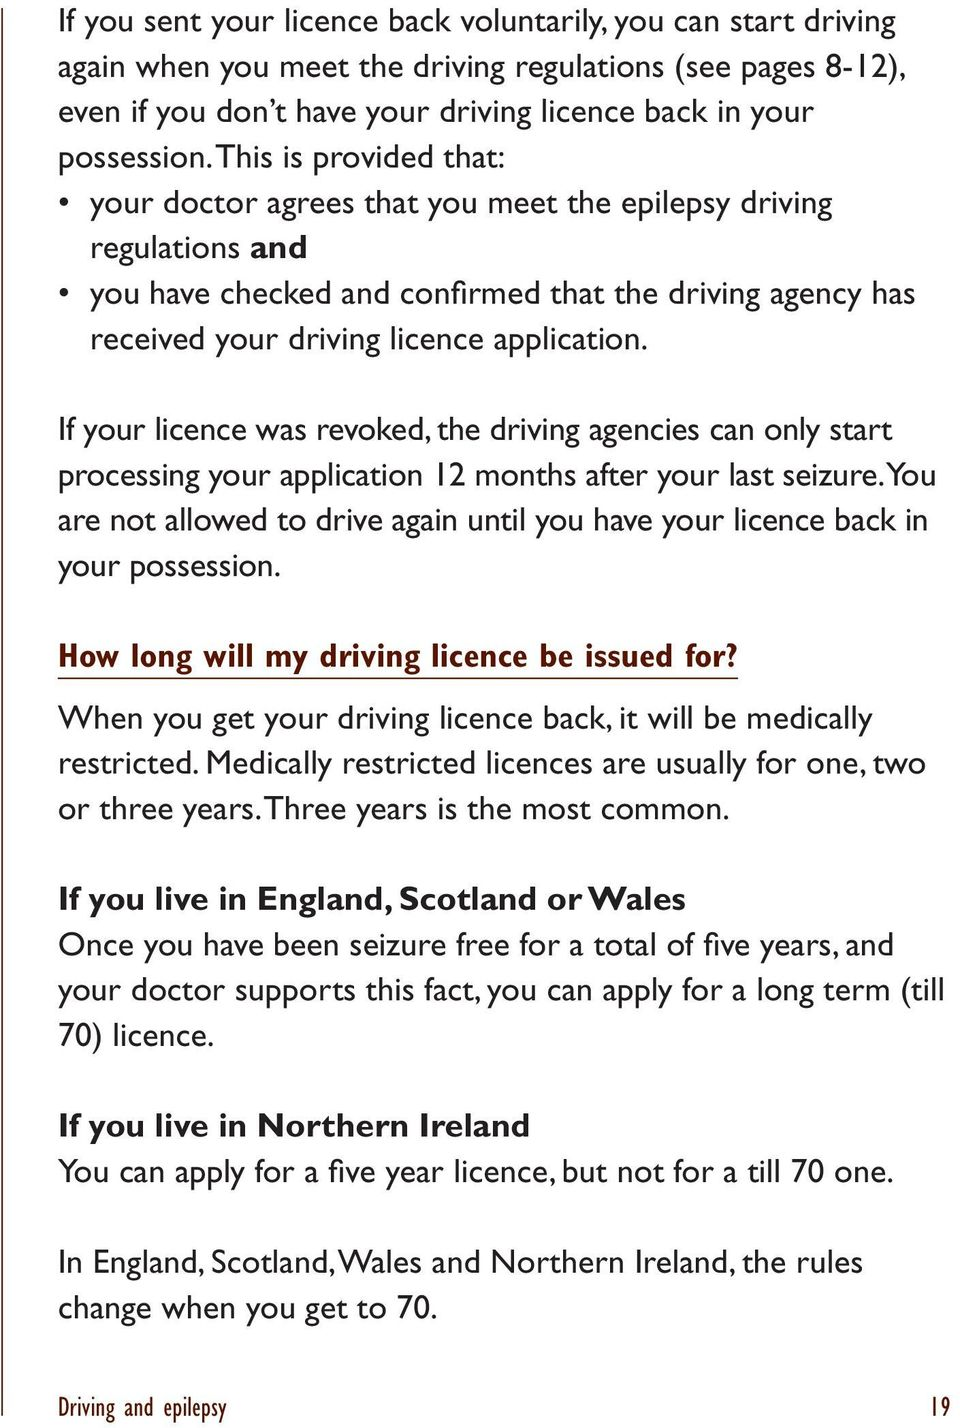 If your licence was revoked, the driving agencies can only start processing your application 12 months after your last seizure.